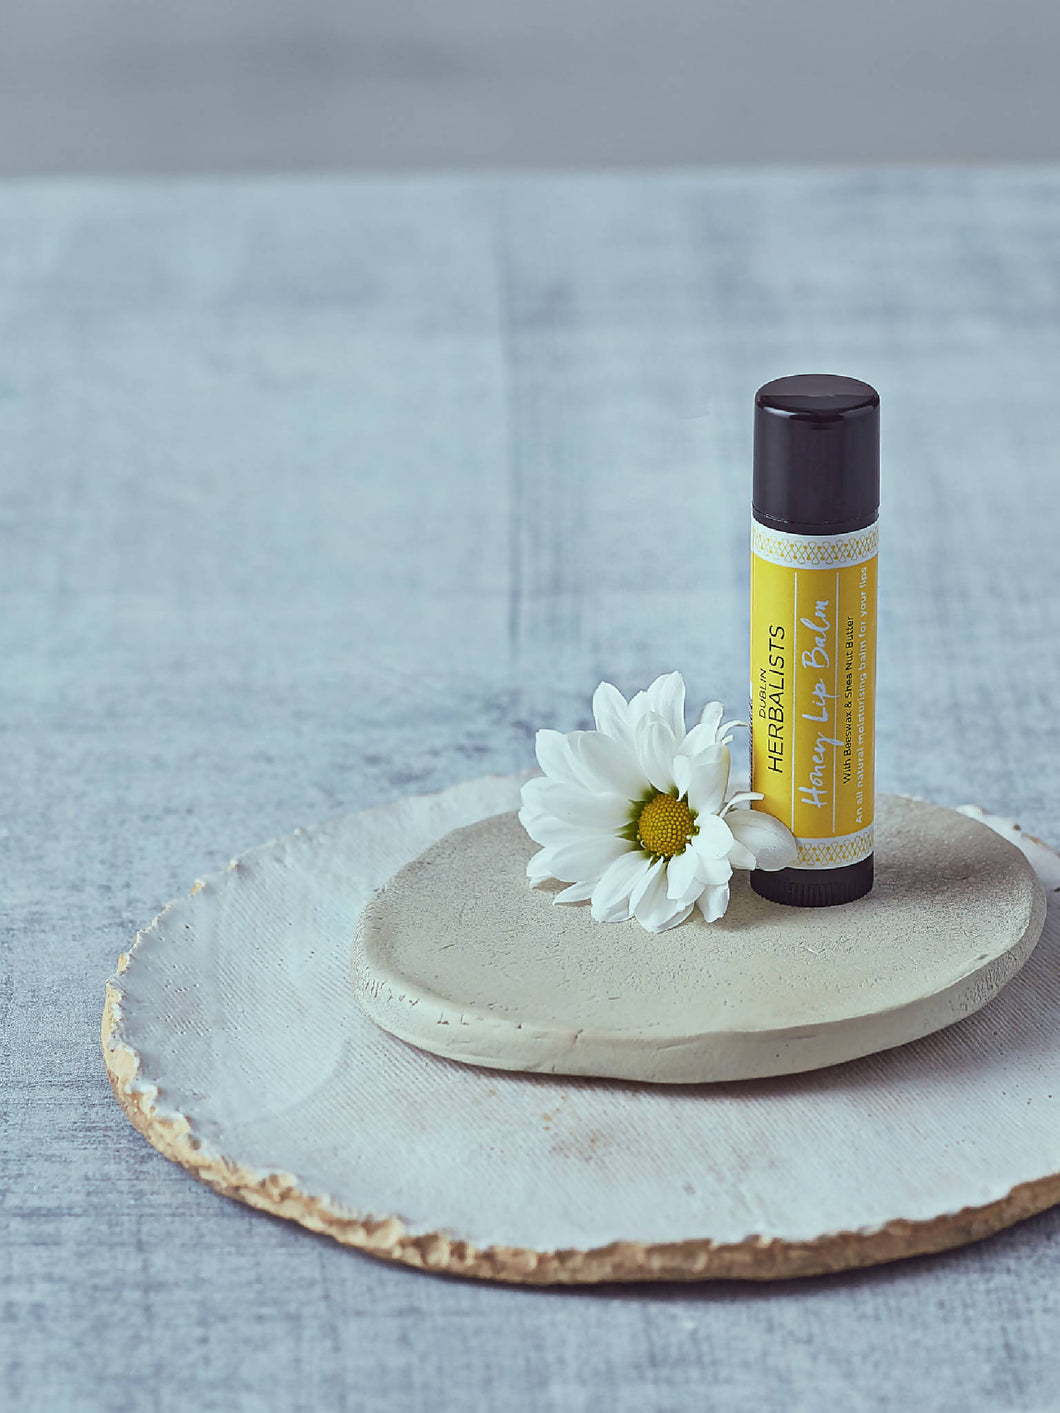 Honey Lip Balm- With Beeswax and Shea Nut Butter